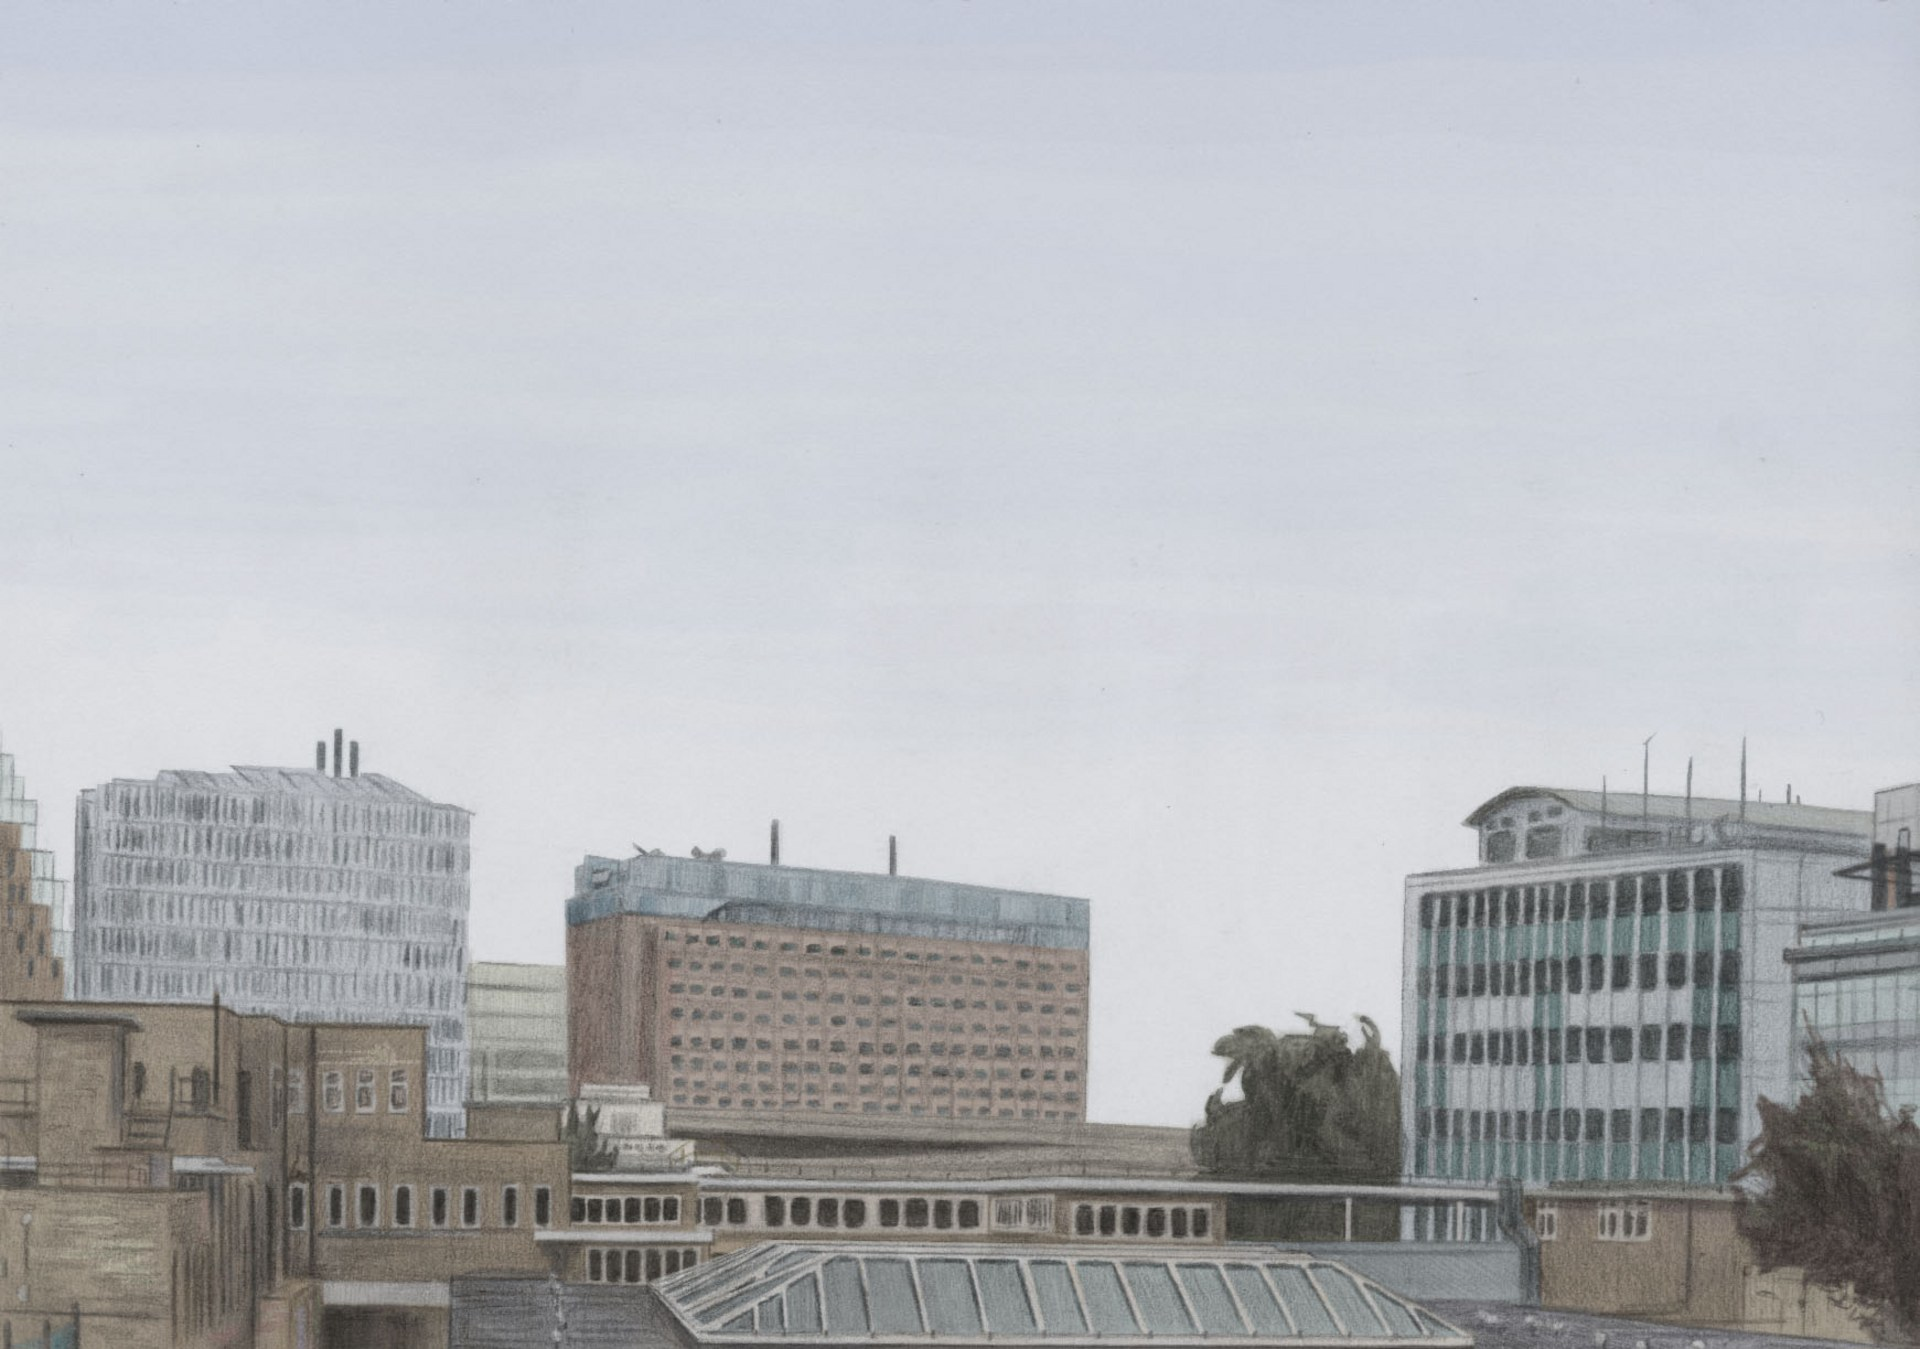 Buildings at White City